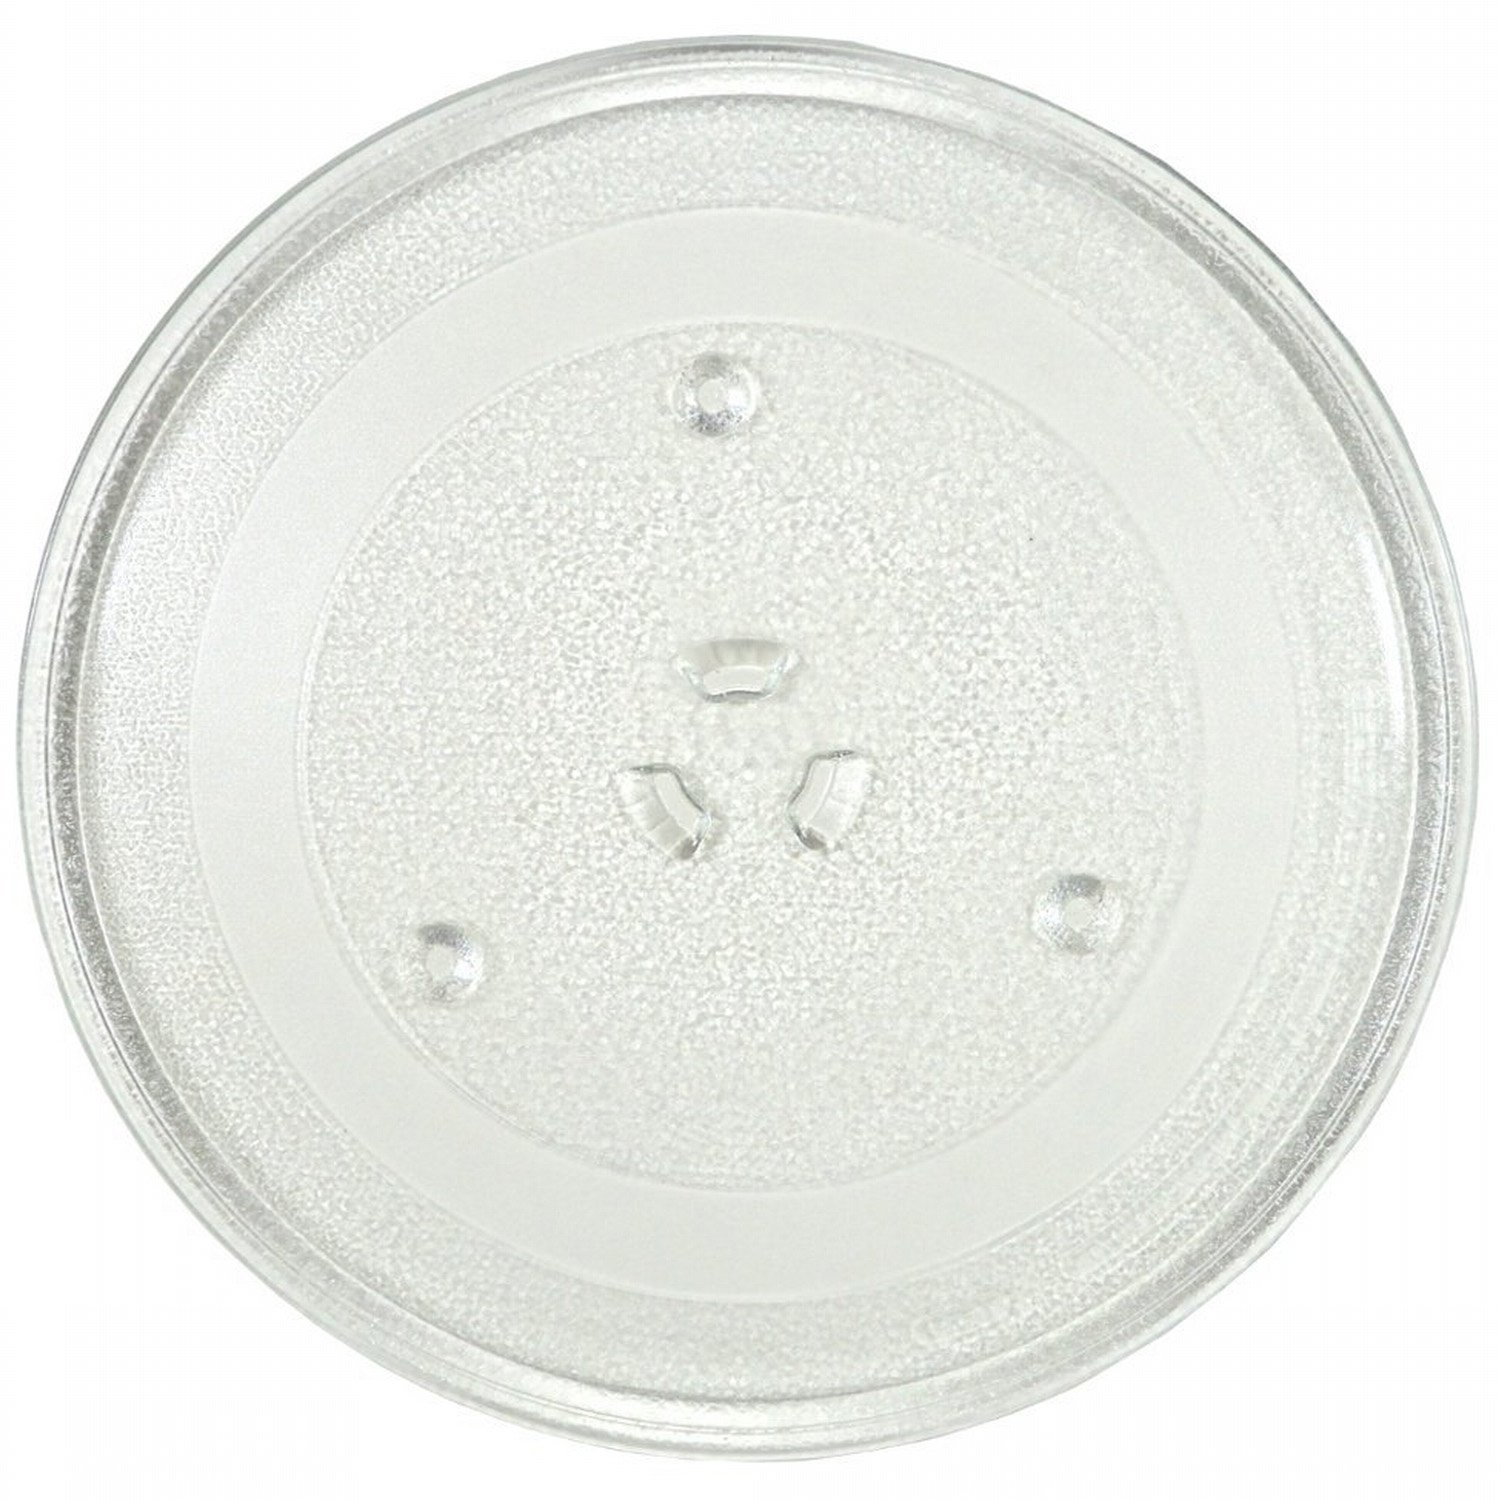 11.25 GE and Samsung -Compatible Microwave Glass Plate//Microwave Glass Turntable Plate Replacement 11 1//4 Plate WB49X10097 Equivalent to G.E